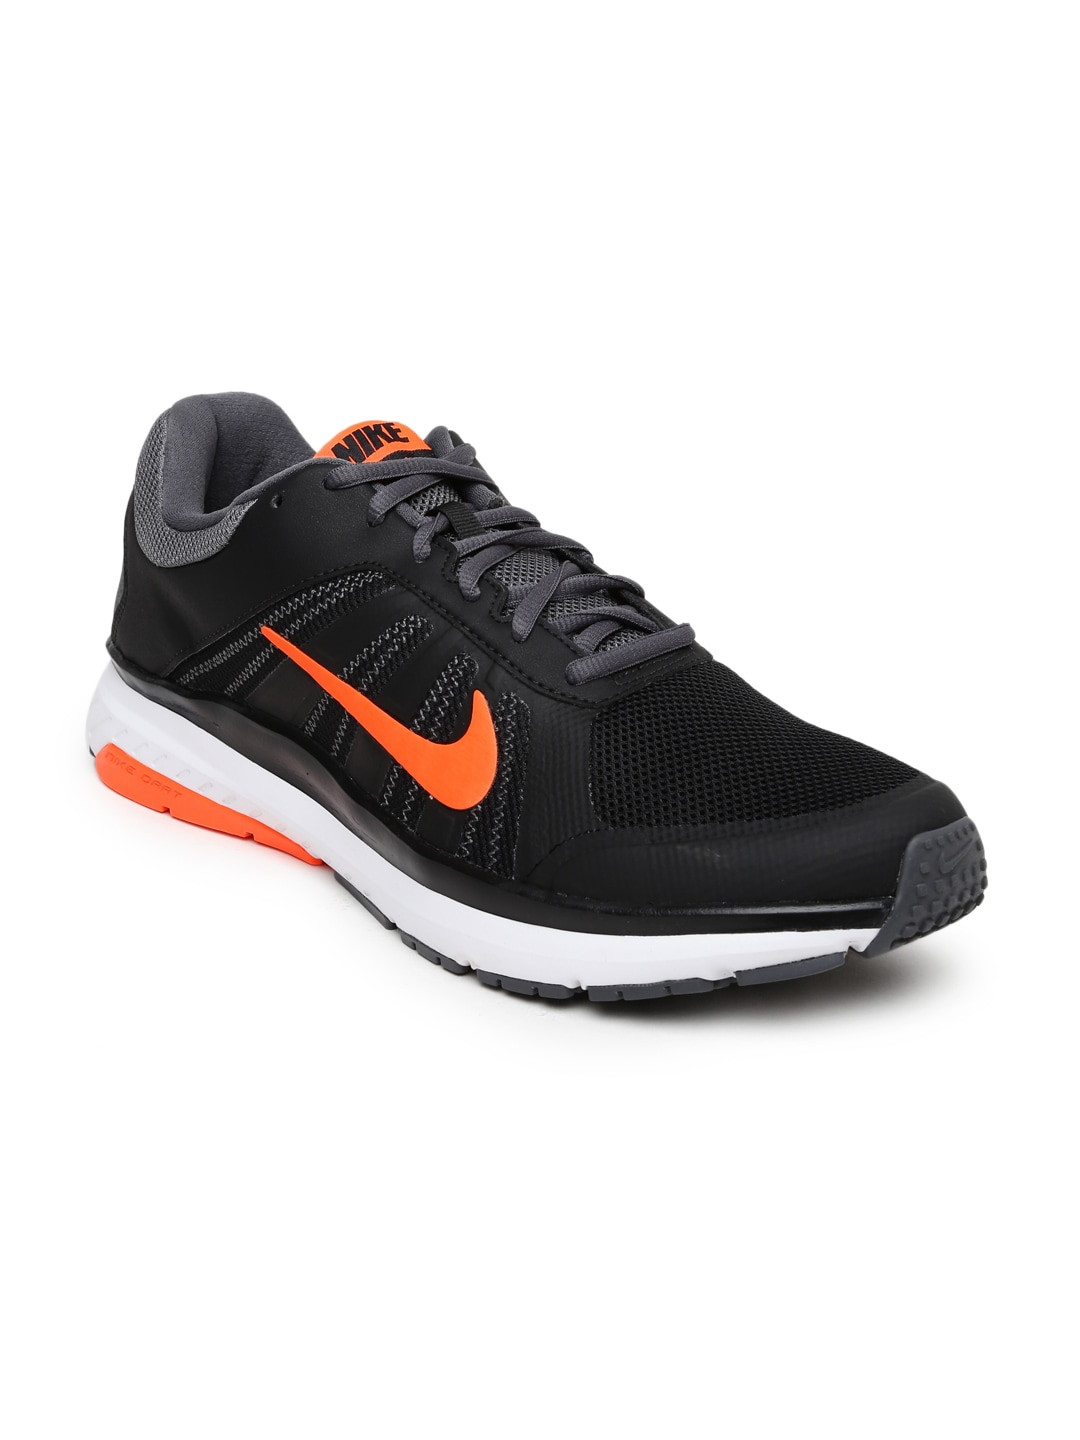 Nike Shoes - Buy Nike Shoes for Men   Women Online  e22ebb7f7